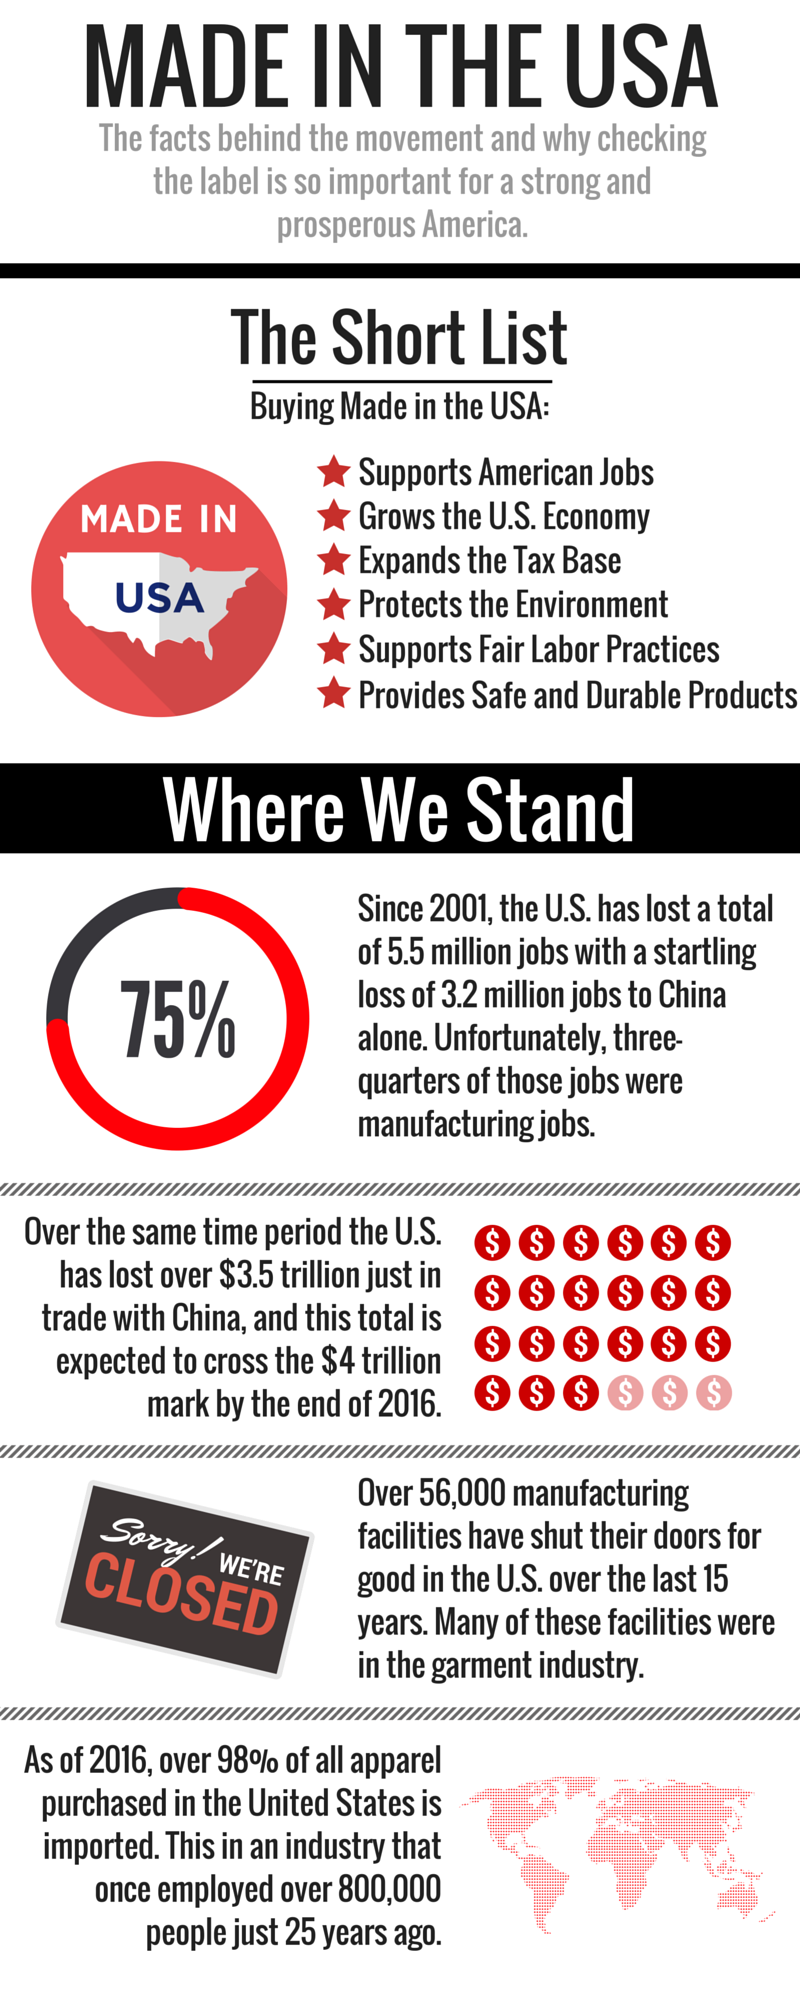 Made in the USA - The facts behind the movement. Where we stand ecnomically and how global trade has impacted our domestic economy.